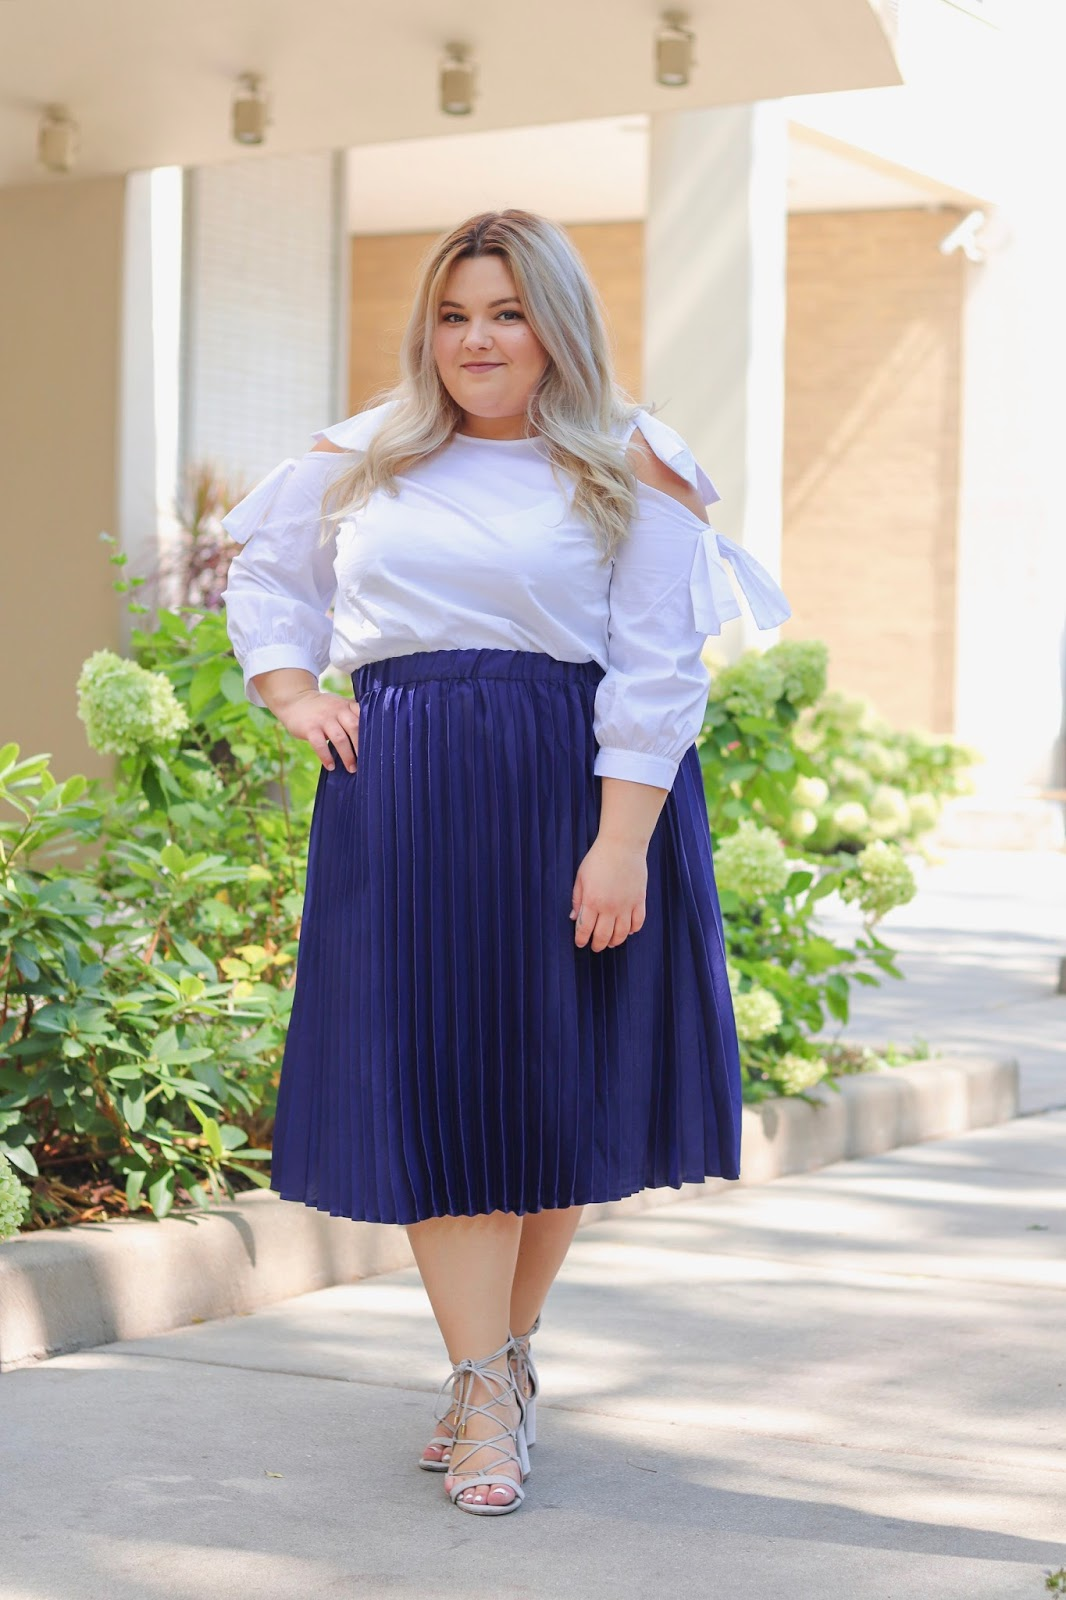 plus size model, chicago plus size fashion blogger, fashion blogger, natalie in the city, Chicago style, natalie craig, plus size pleated skirts, elqouii, shoulder cutouts, affordable plus size clothing, curves and confidence, embrace my curves, body positive, fat fashion, what fat girls actually wear